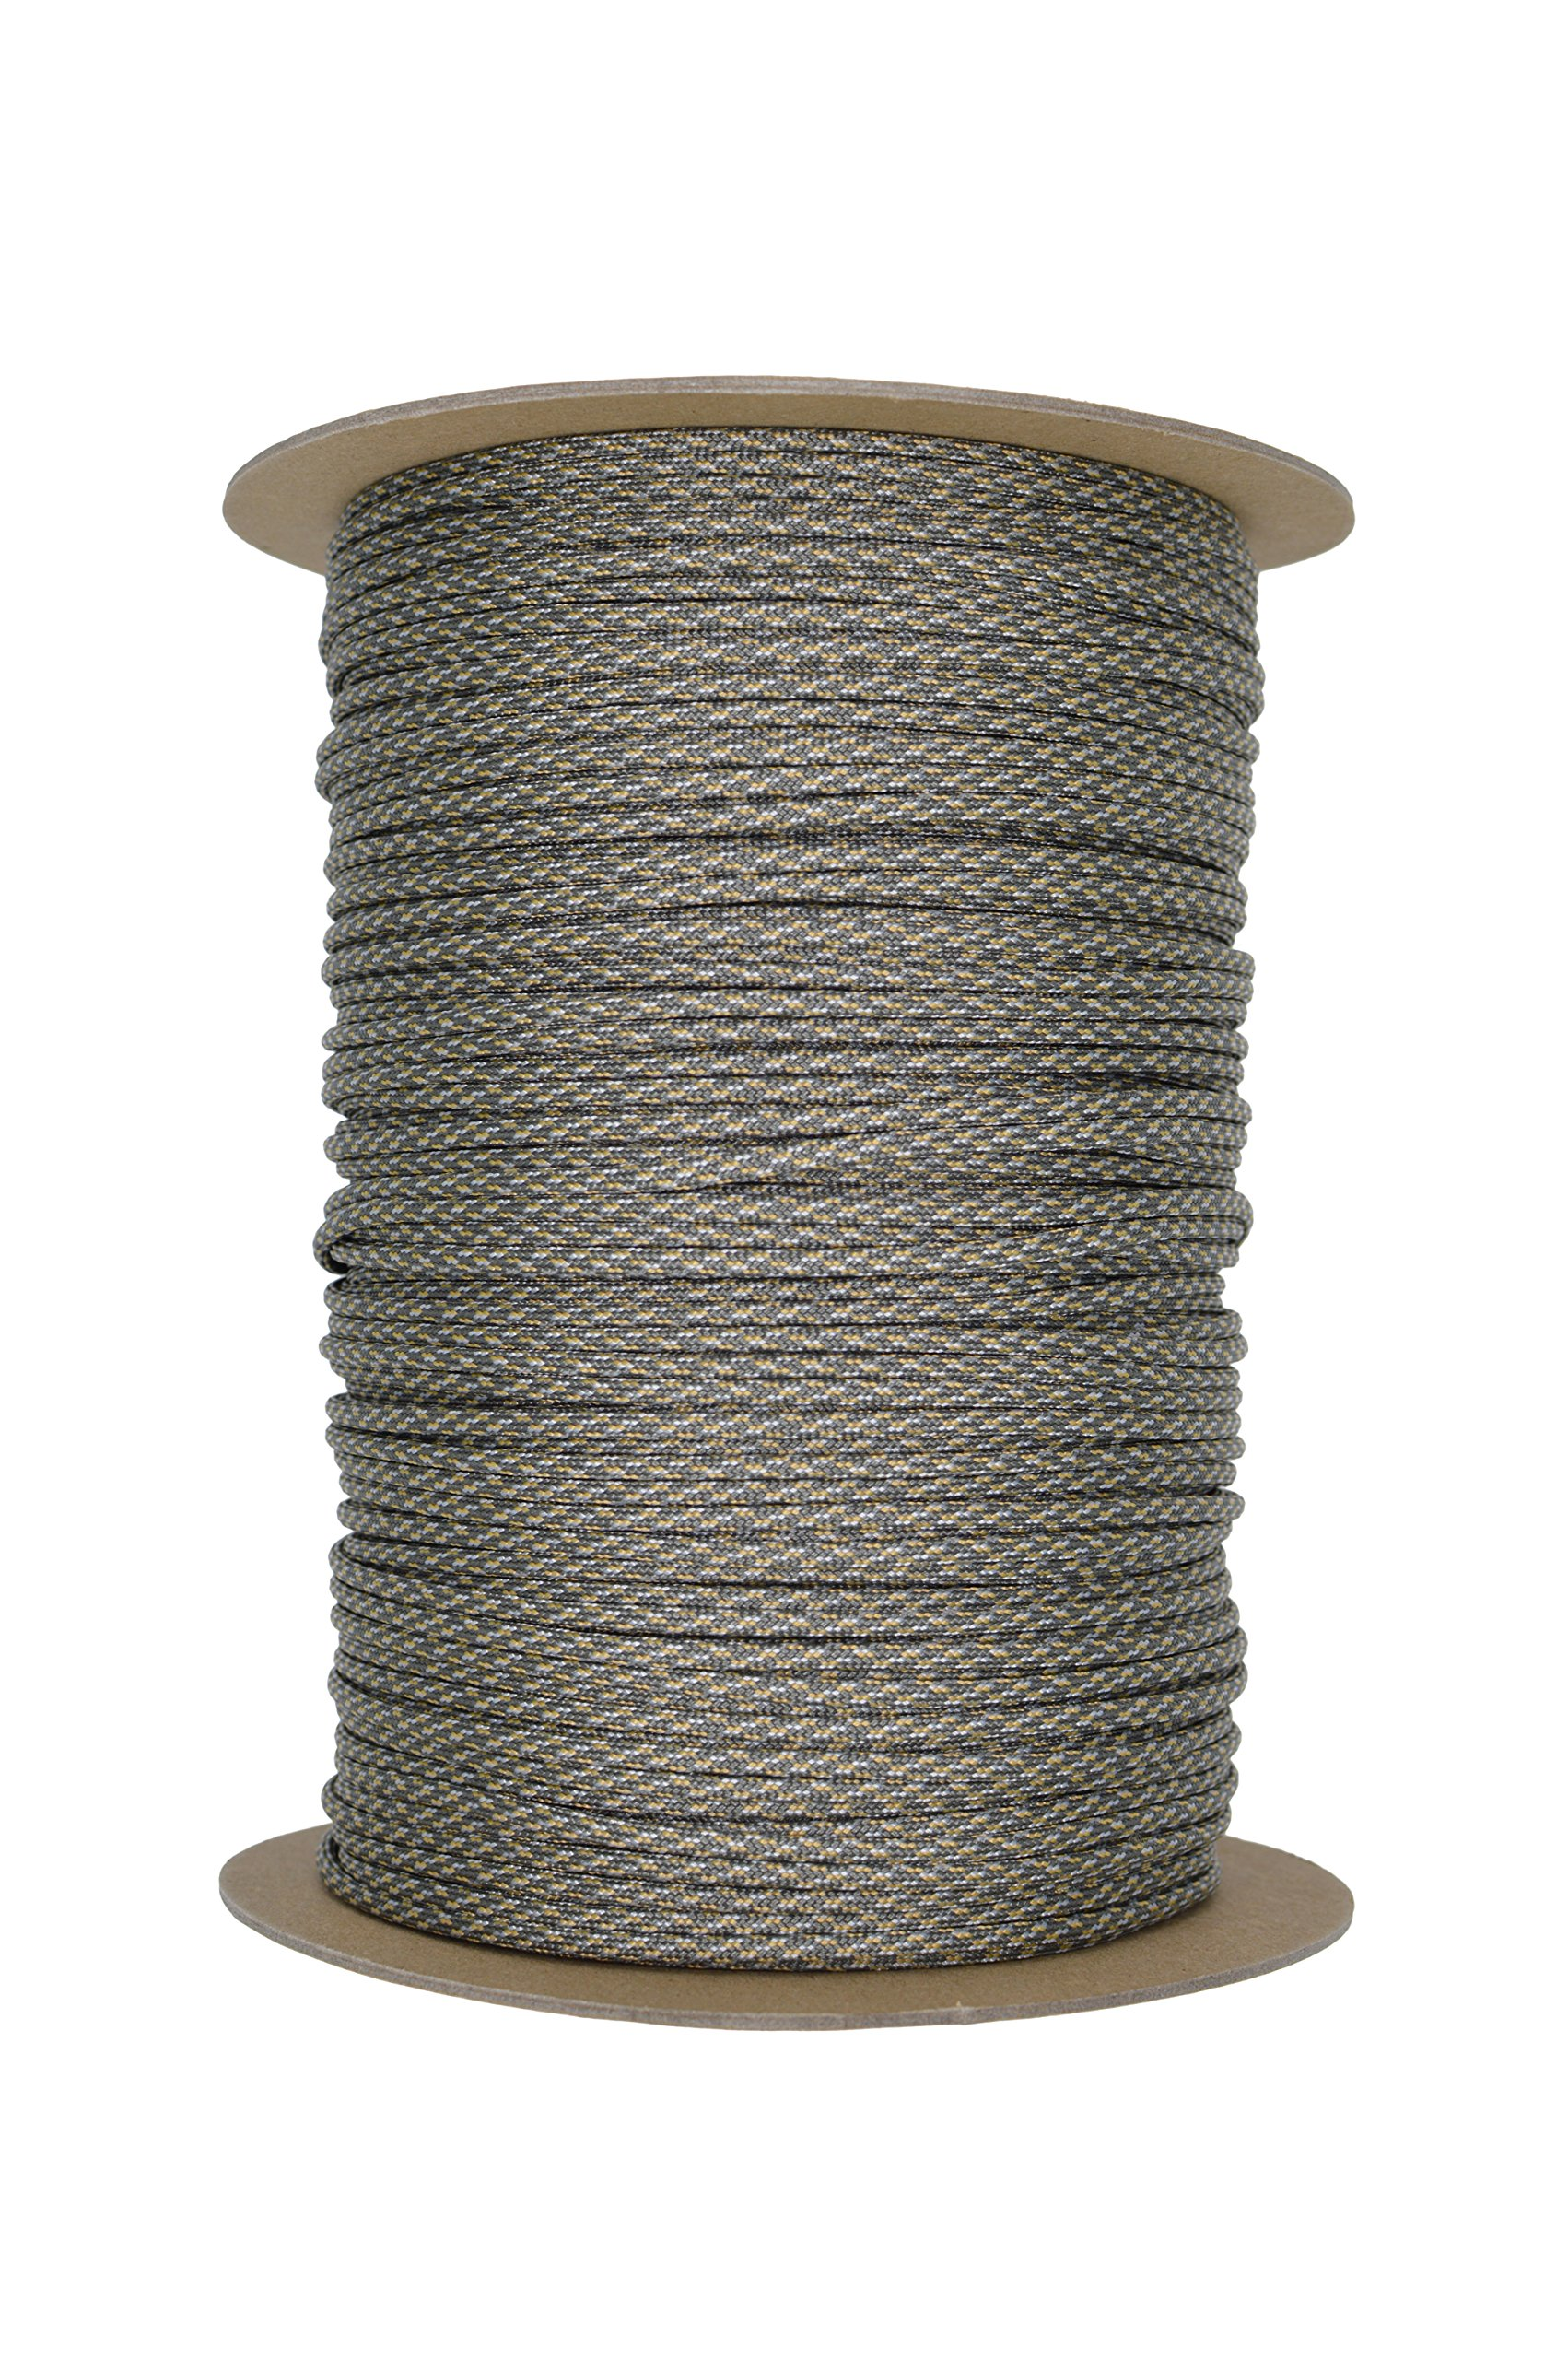 Paracord Rope 550 Type III Paracord - Parachute Cord - 550lb Tensile Strength - 100% Nylon - Made In The USA (ACU Digital, 100 Feet) by Paracord Rope (Image #3)